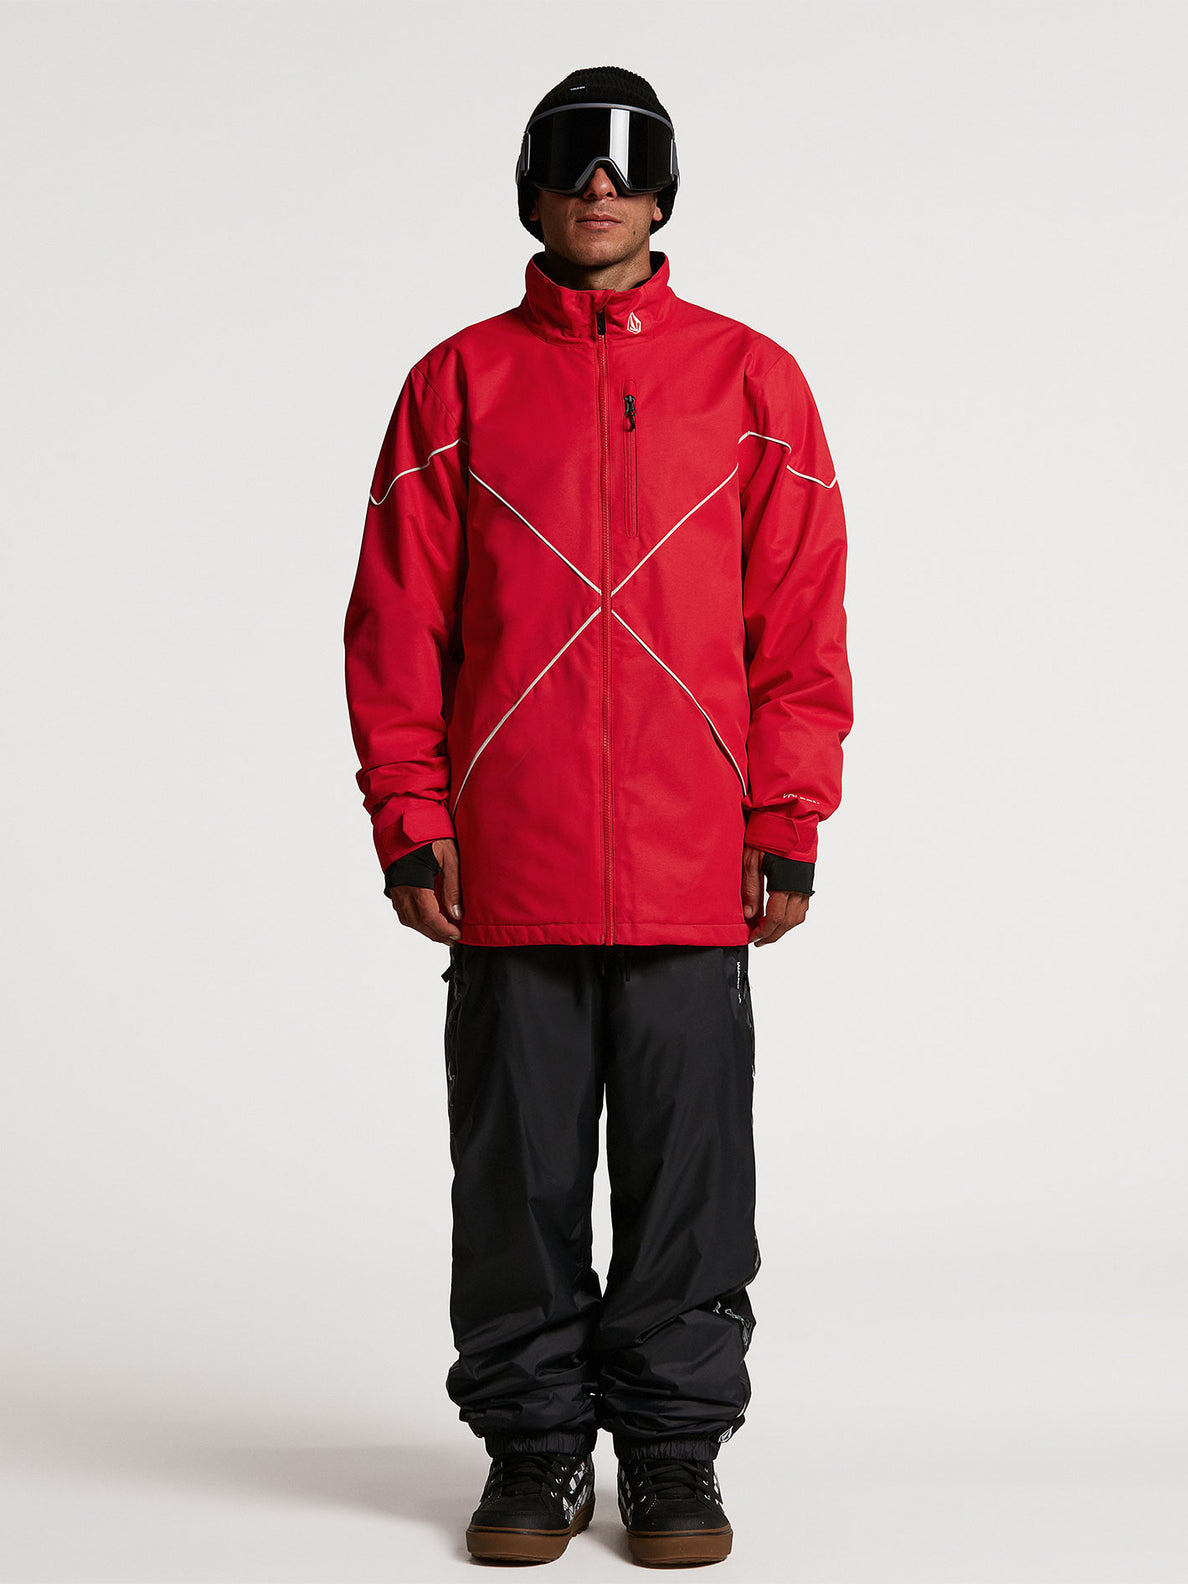 NO HOOD X JACKET - RED (G0652114_RED) [02]